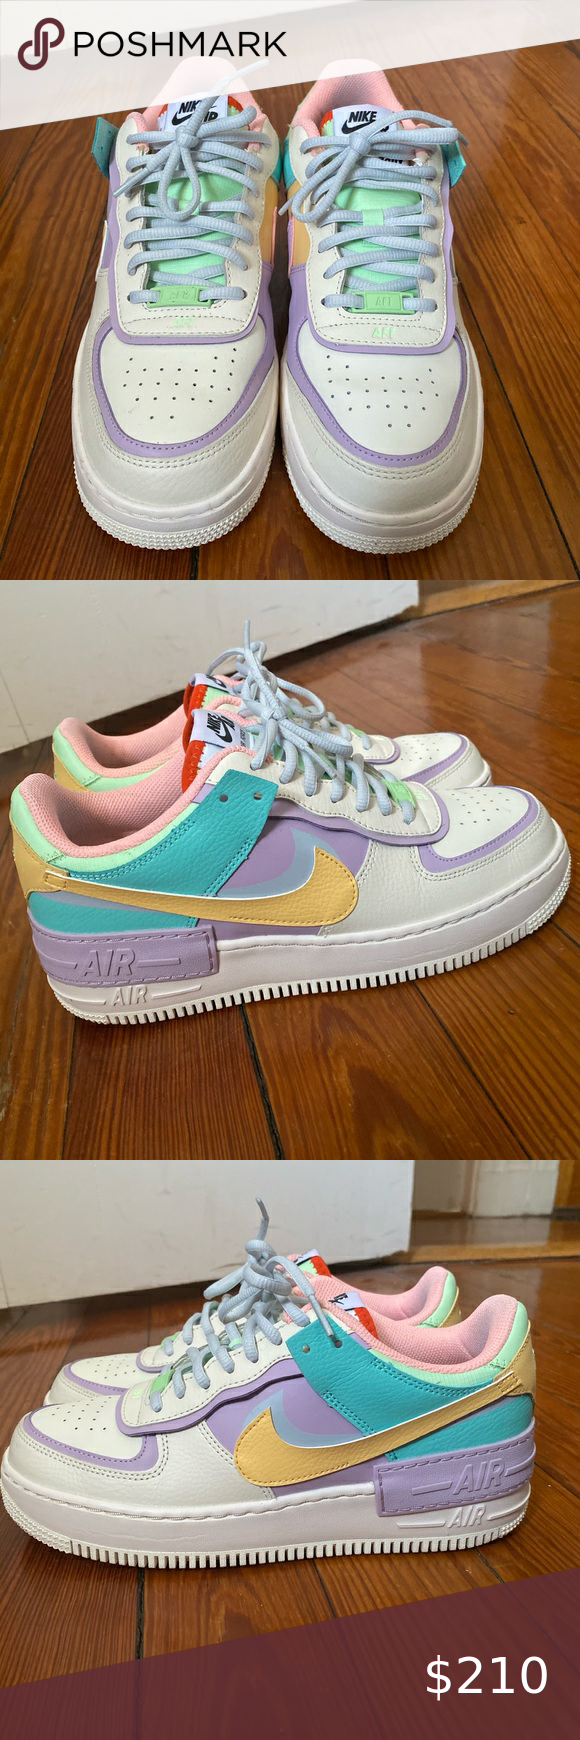 AIR FORCE 1 SHADOW PALE IVORY WOMANS SIZE 10 in 2020 Air